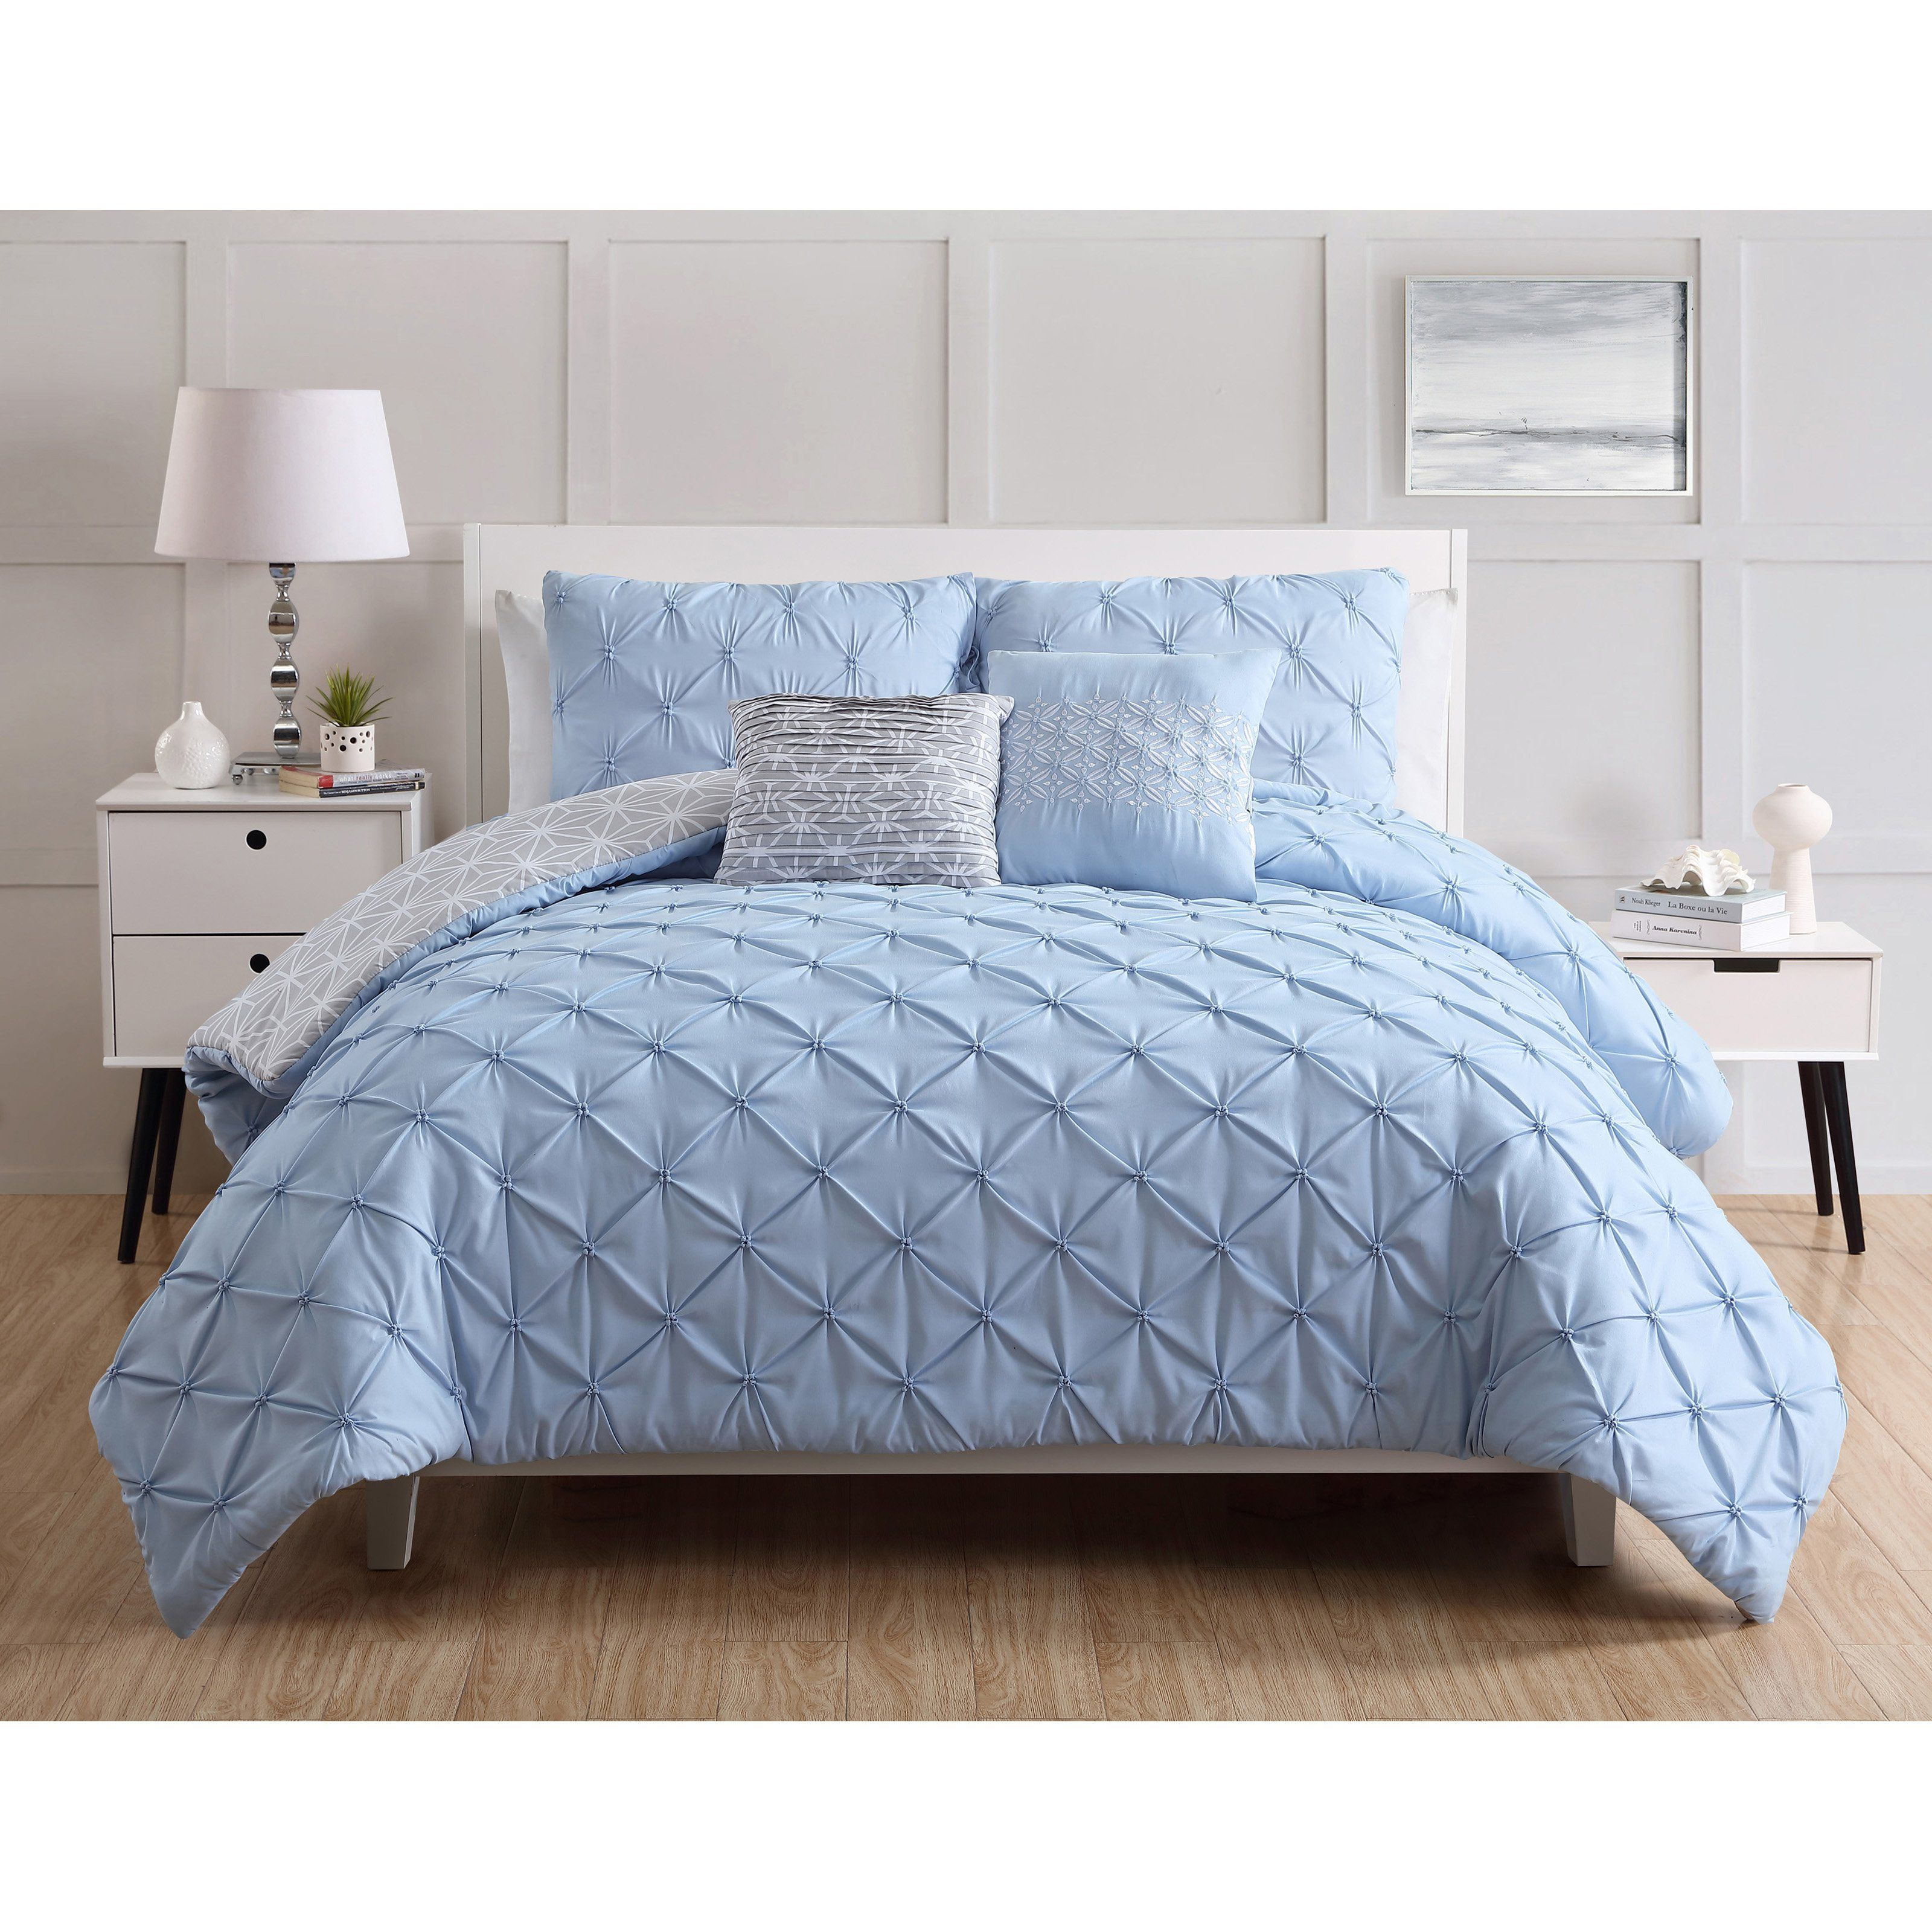 Ziva Comforter Set by VCNY from